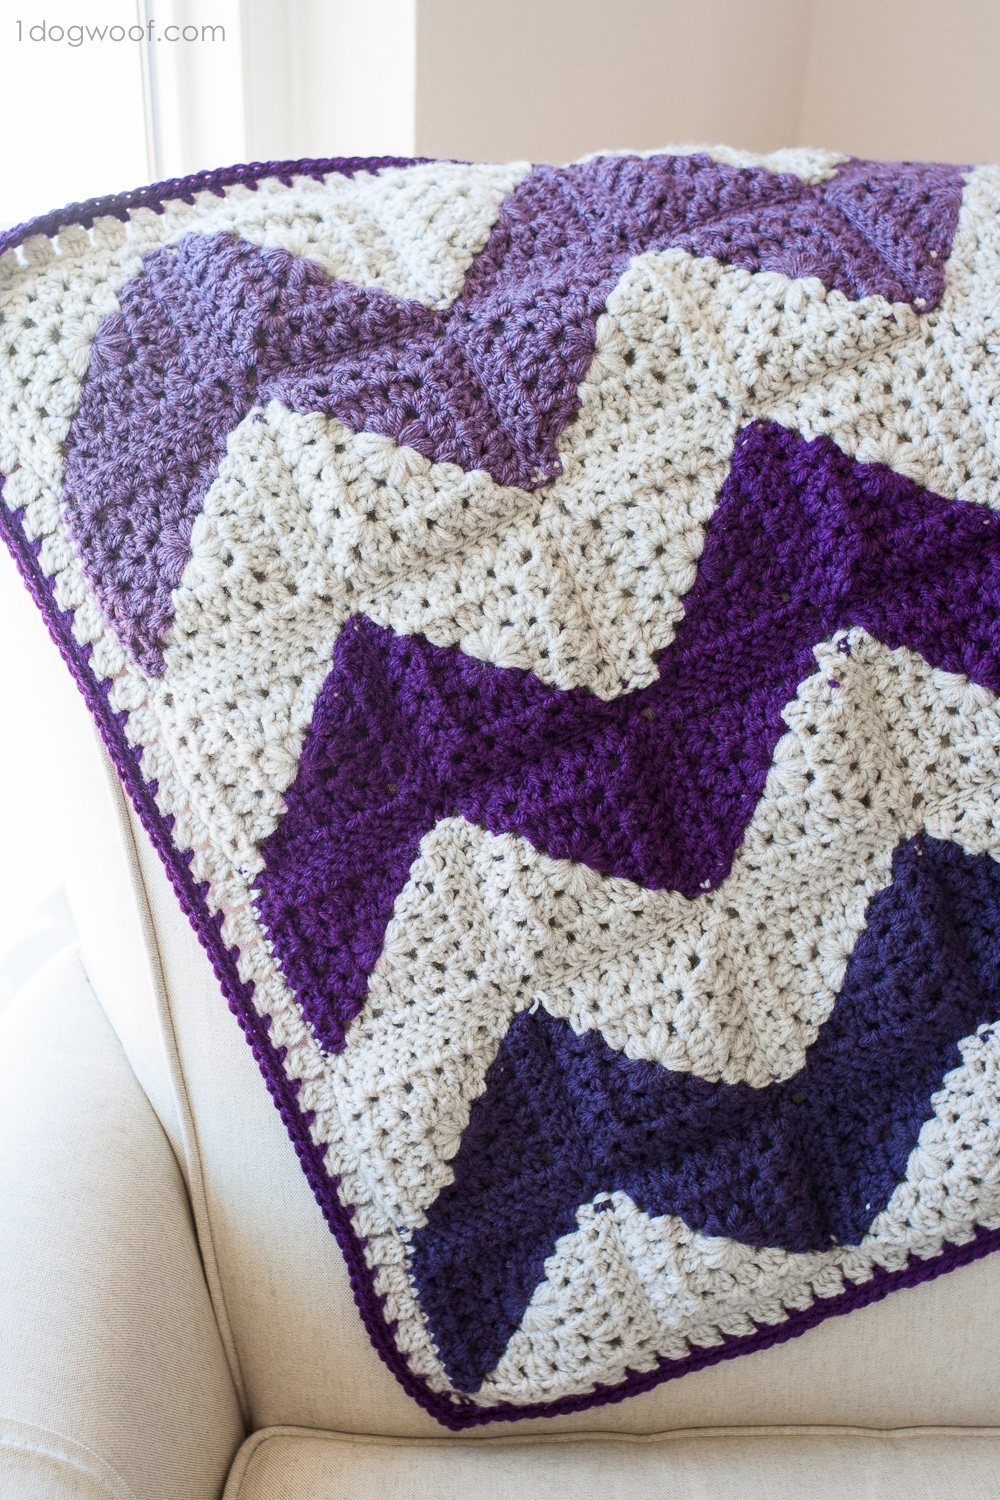 Blanket Crochet Pattern Free to Get You Warmer at Night Granny Squares Chevron Afghan Crochet Pattern One Dog Woof